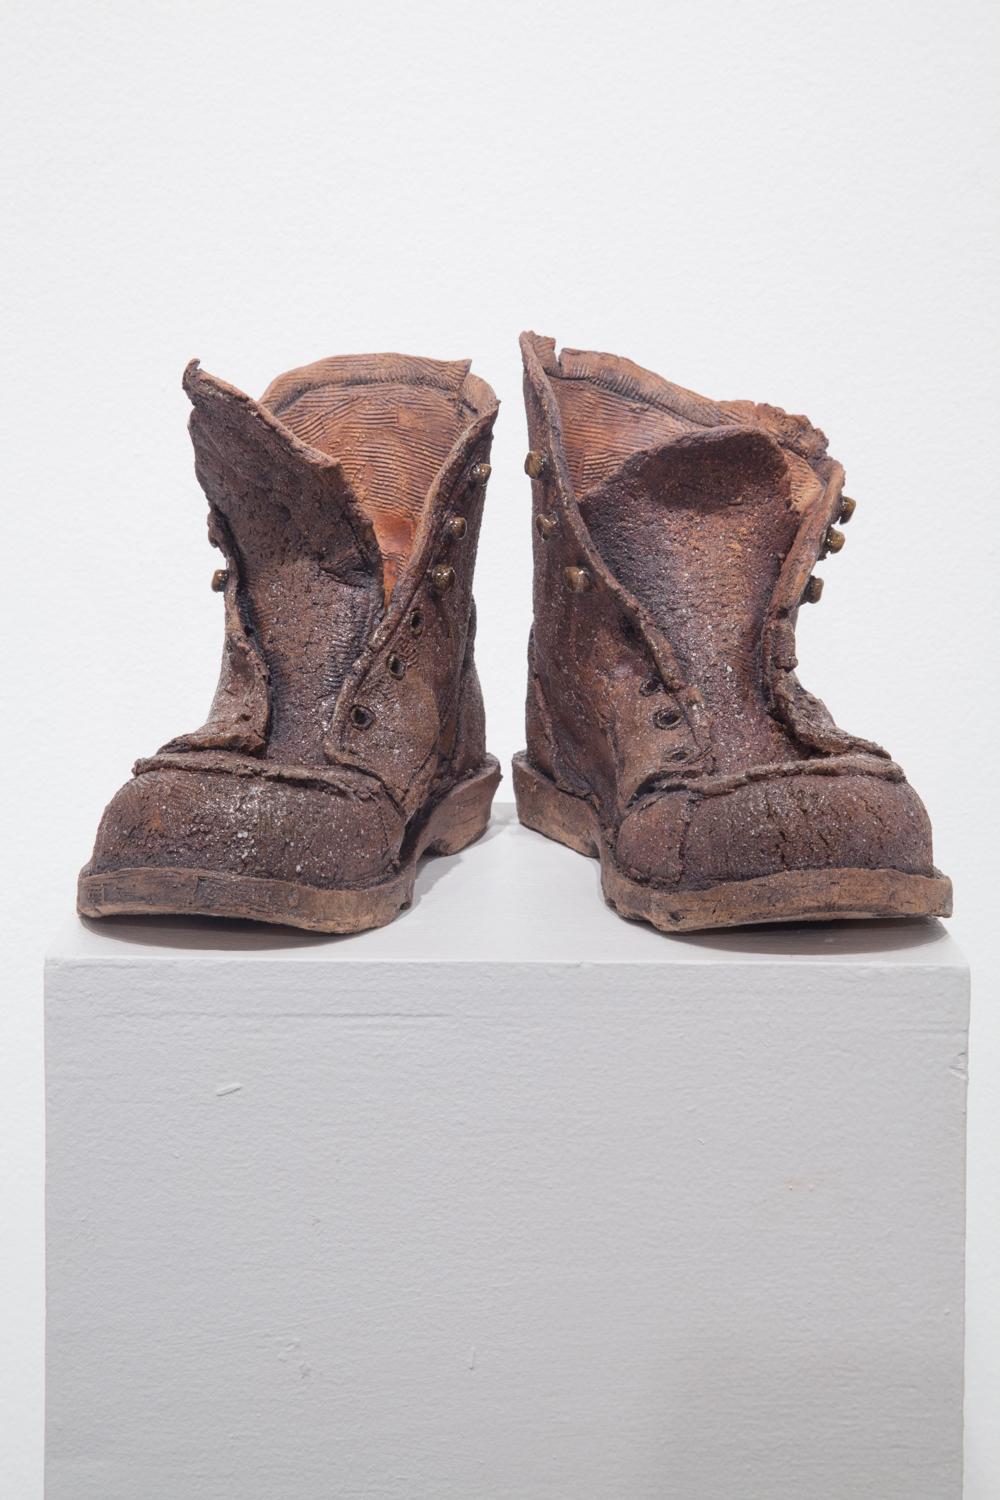 Claire Shurley     Papa's Work Boots     reclaimed stoneware, dirt from Shurley farmland, black stain, iron oxide, glaze, cone 6 oxidation